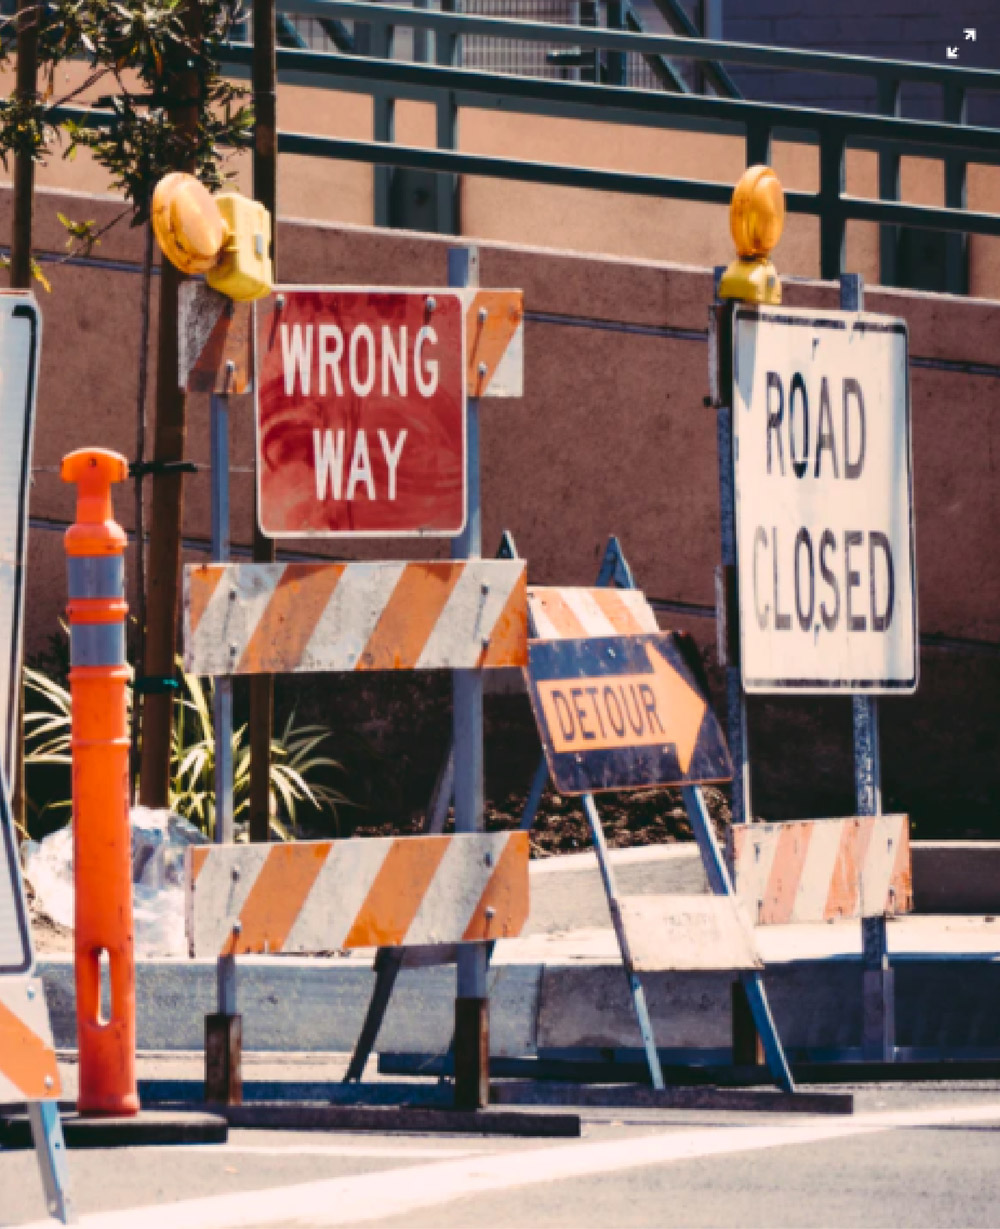 """Construction signage including """"wrong way"""", """"Detour"""", and """"road closed""""."""